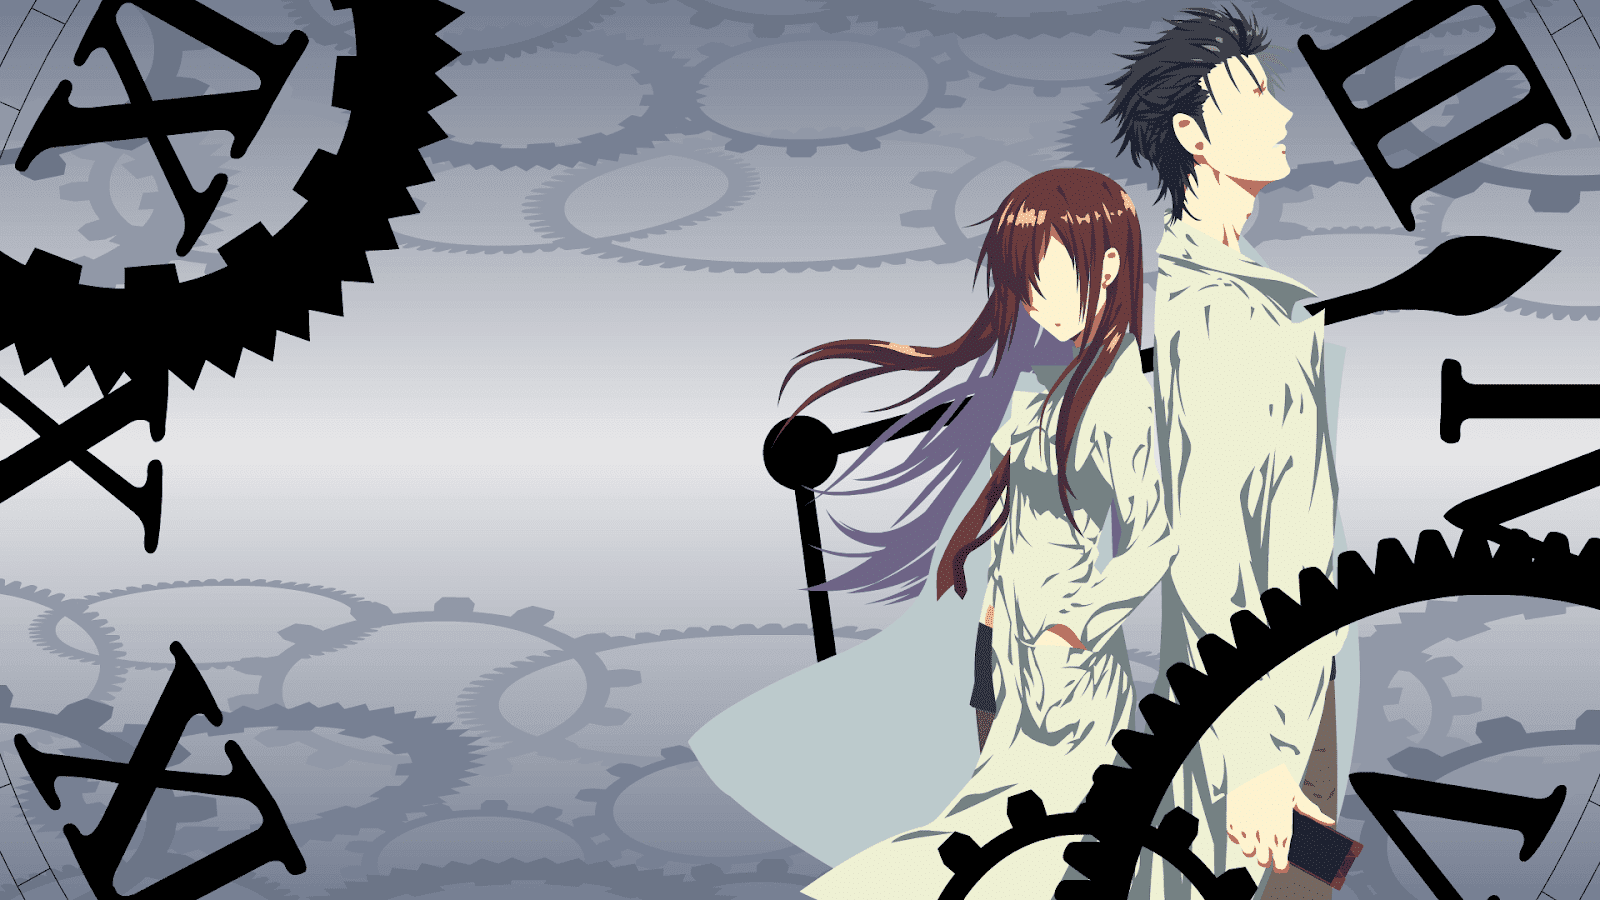 Steins Gate Okabe Kurisu 1080p Wallpaper Engine Anime